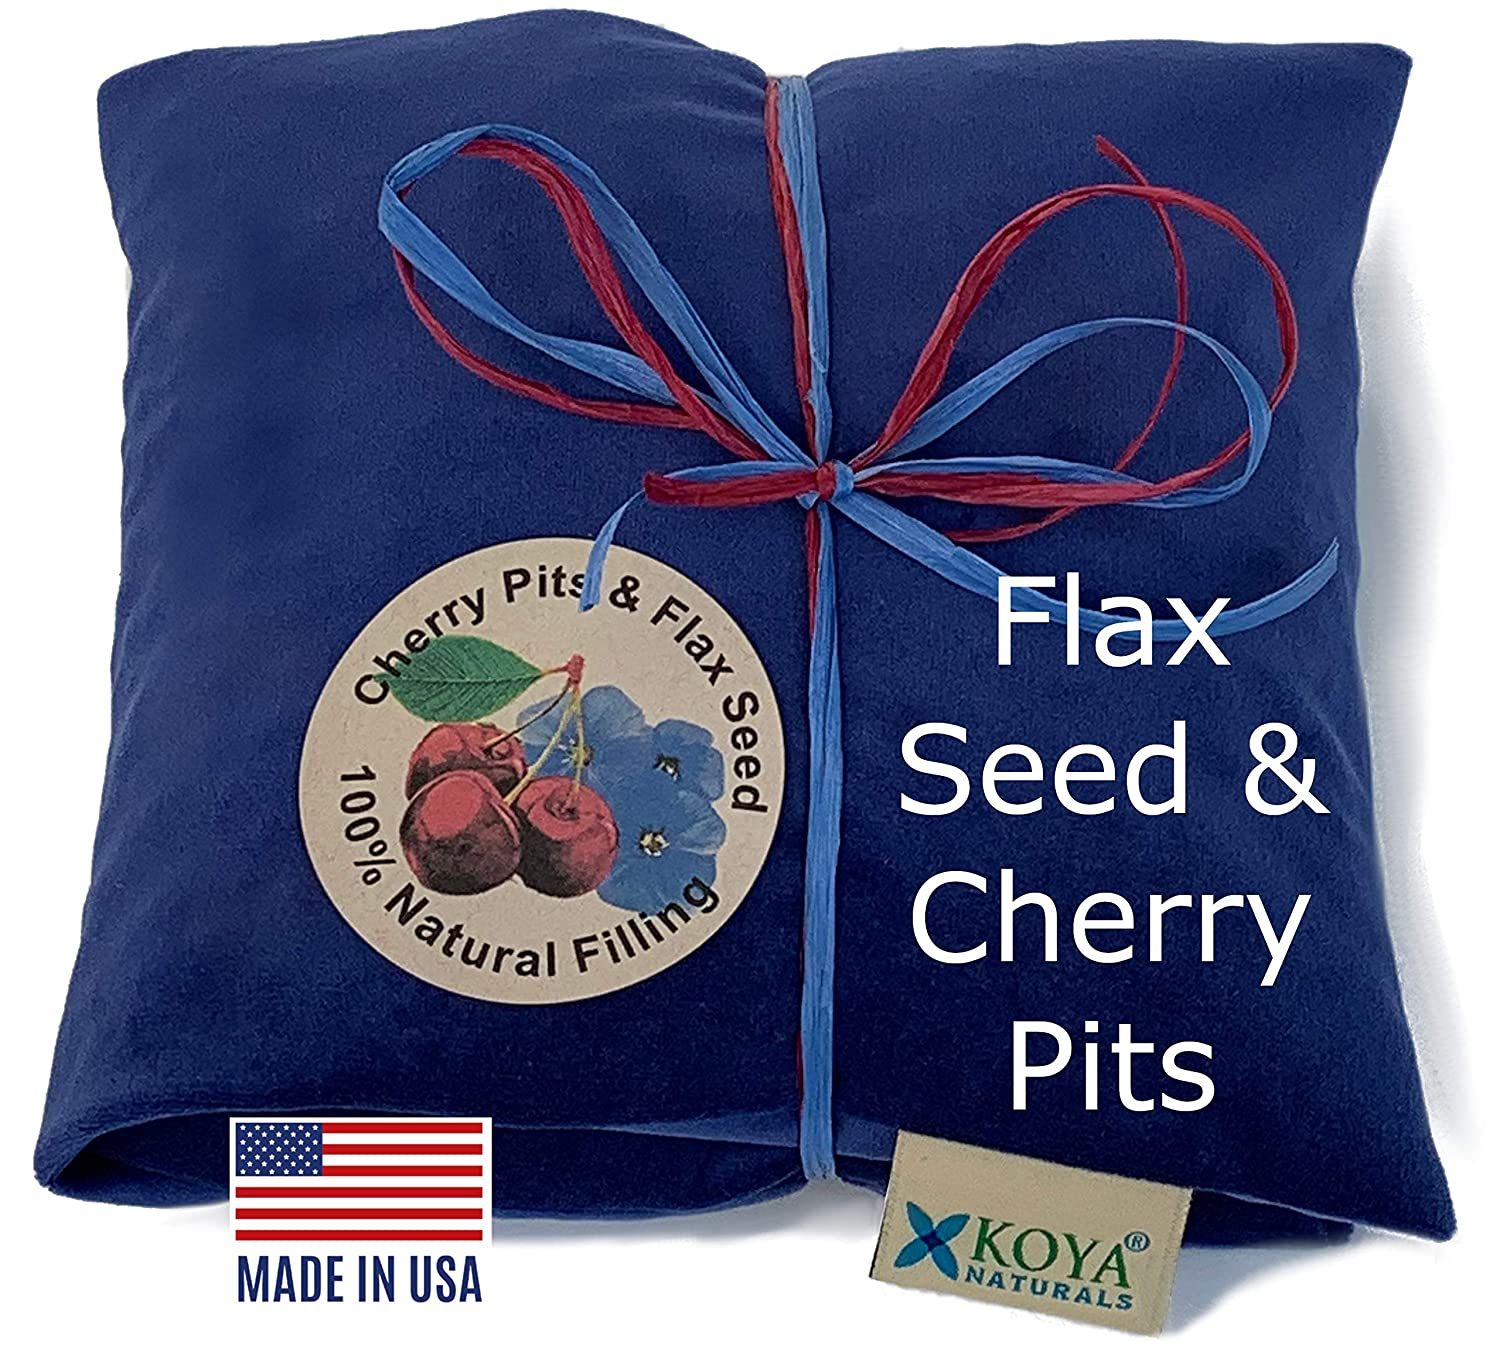 KOYA Naturals Comfort-Mix Flax Seed & Cherry Pit Pillow – Microwavable - for Neck, Muscle, Joint, Stomach Pain, Menstrual Cramp - Soft Velvet - Heat Pack Pad - Made in USA